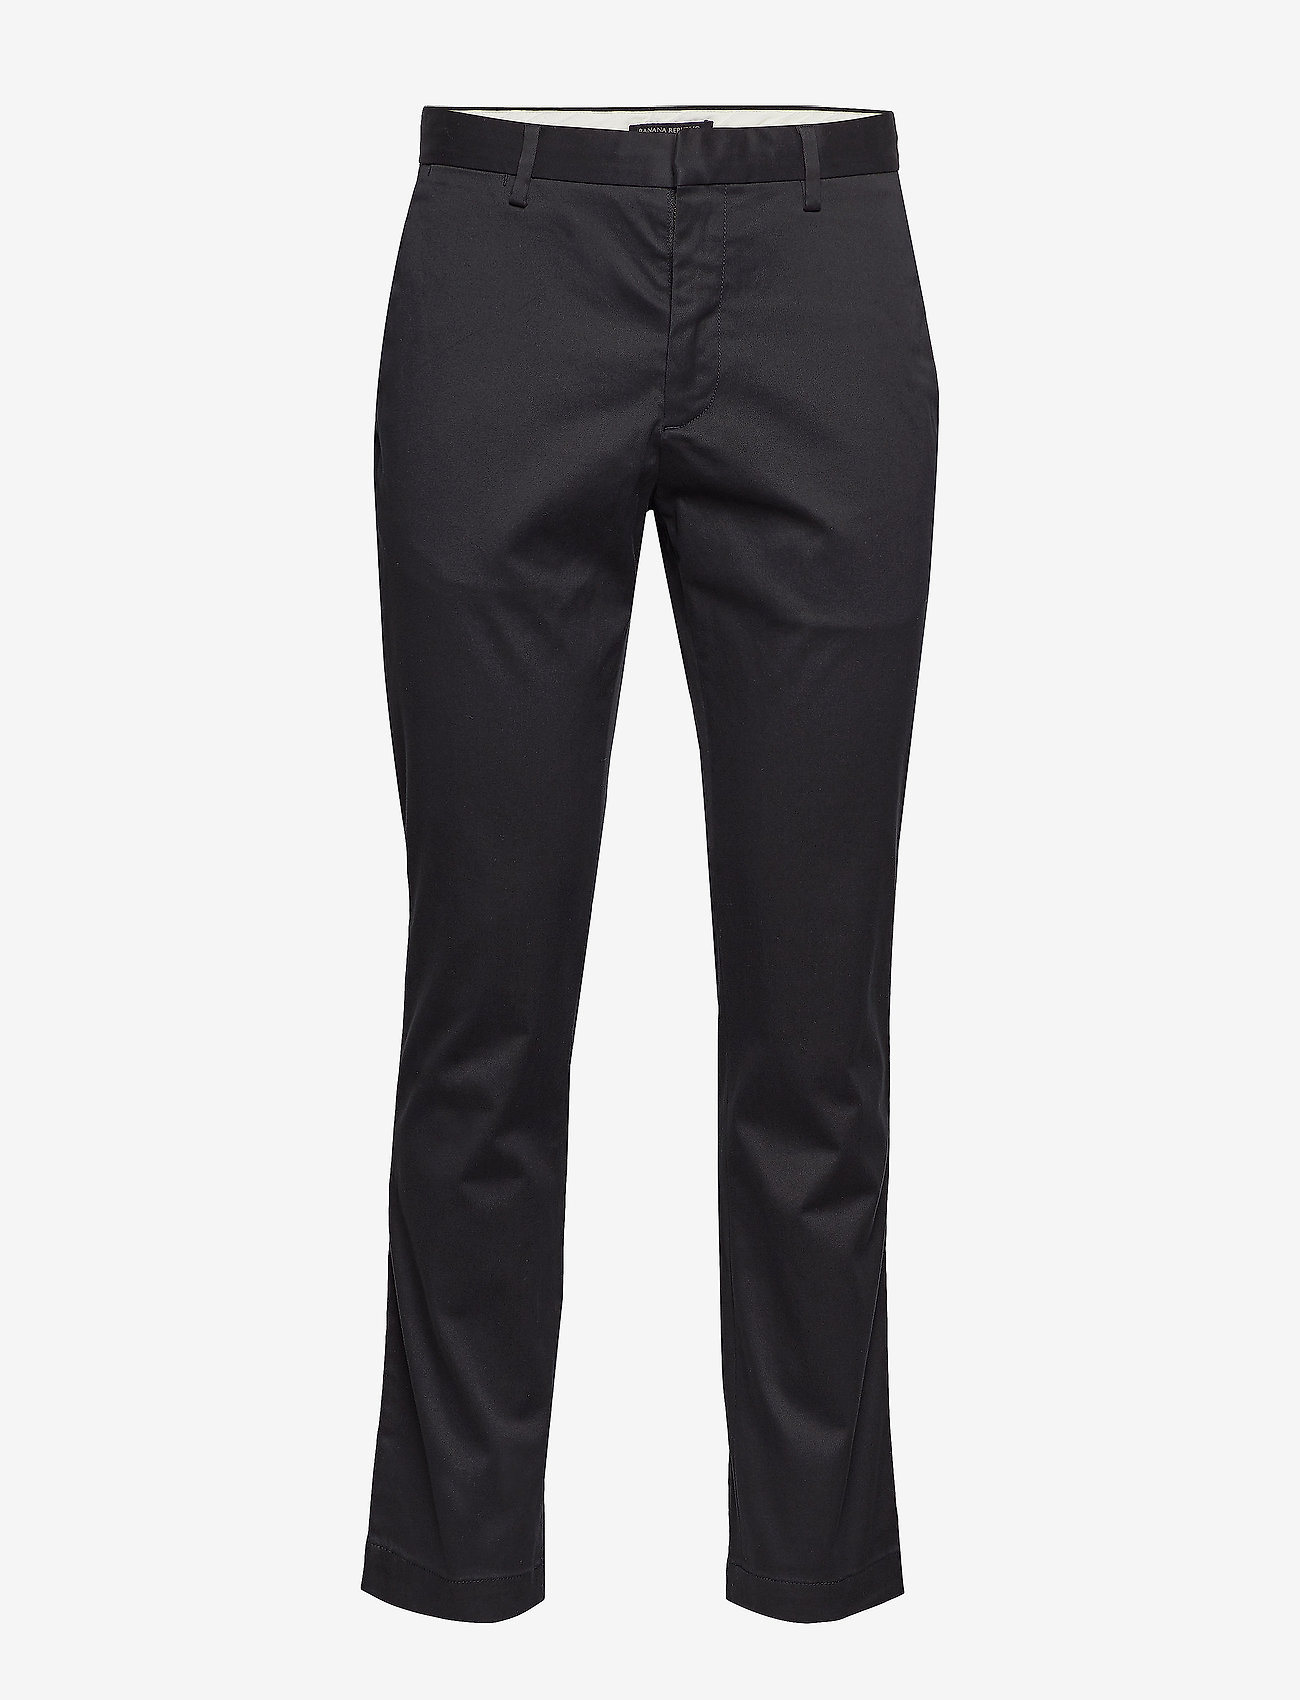 Banana Republic - Aiden Slim Rapid Movement Chino - chinos - black - 0